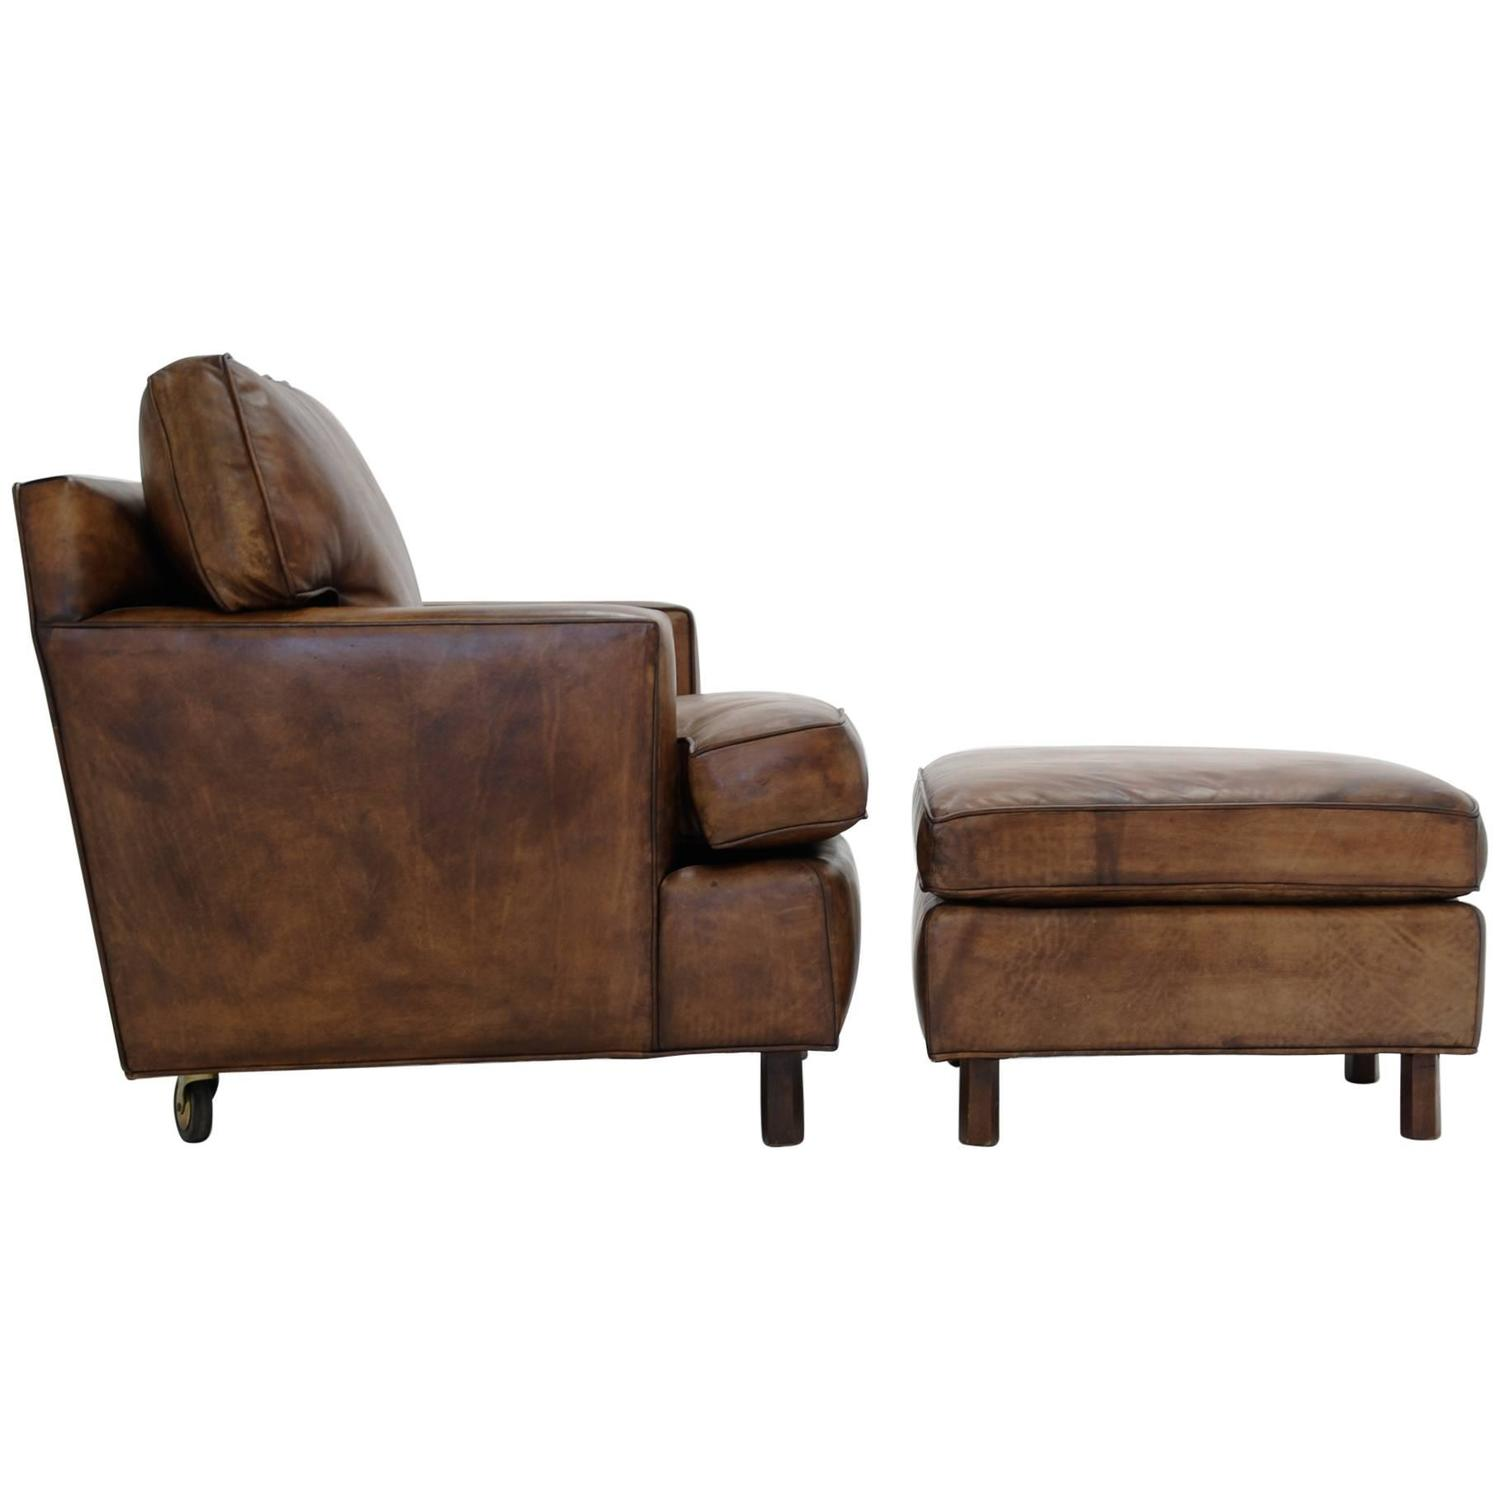 Edward Wormley for Dunbar Club Chair and Ottoman For Sale at 1stdibs